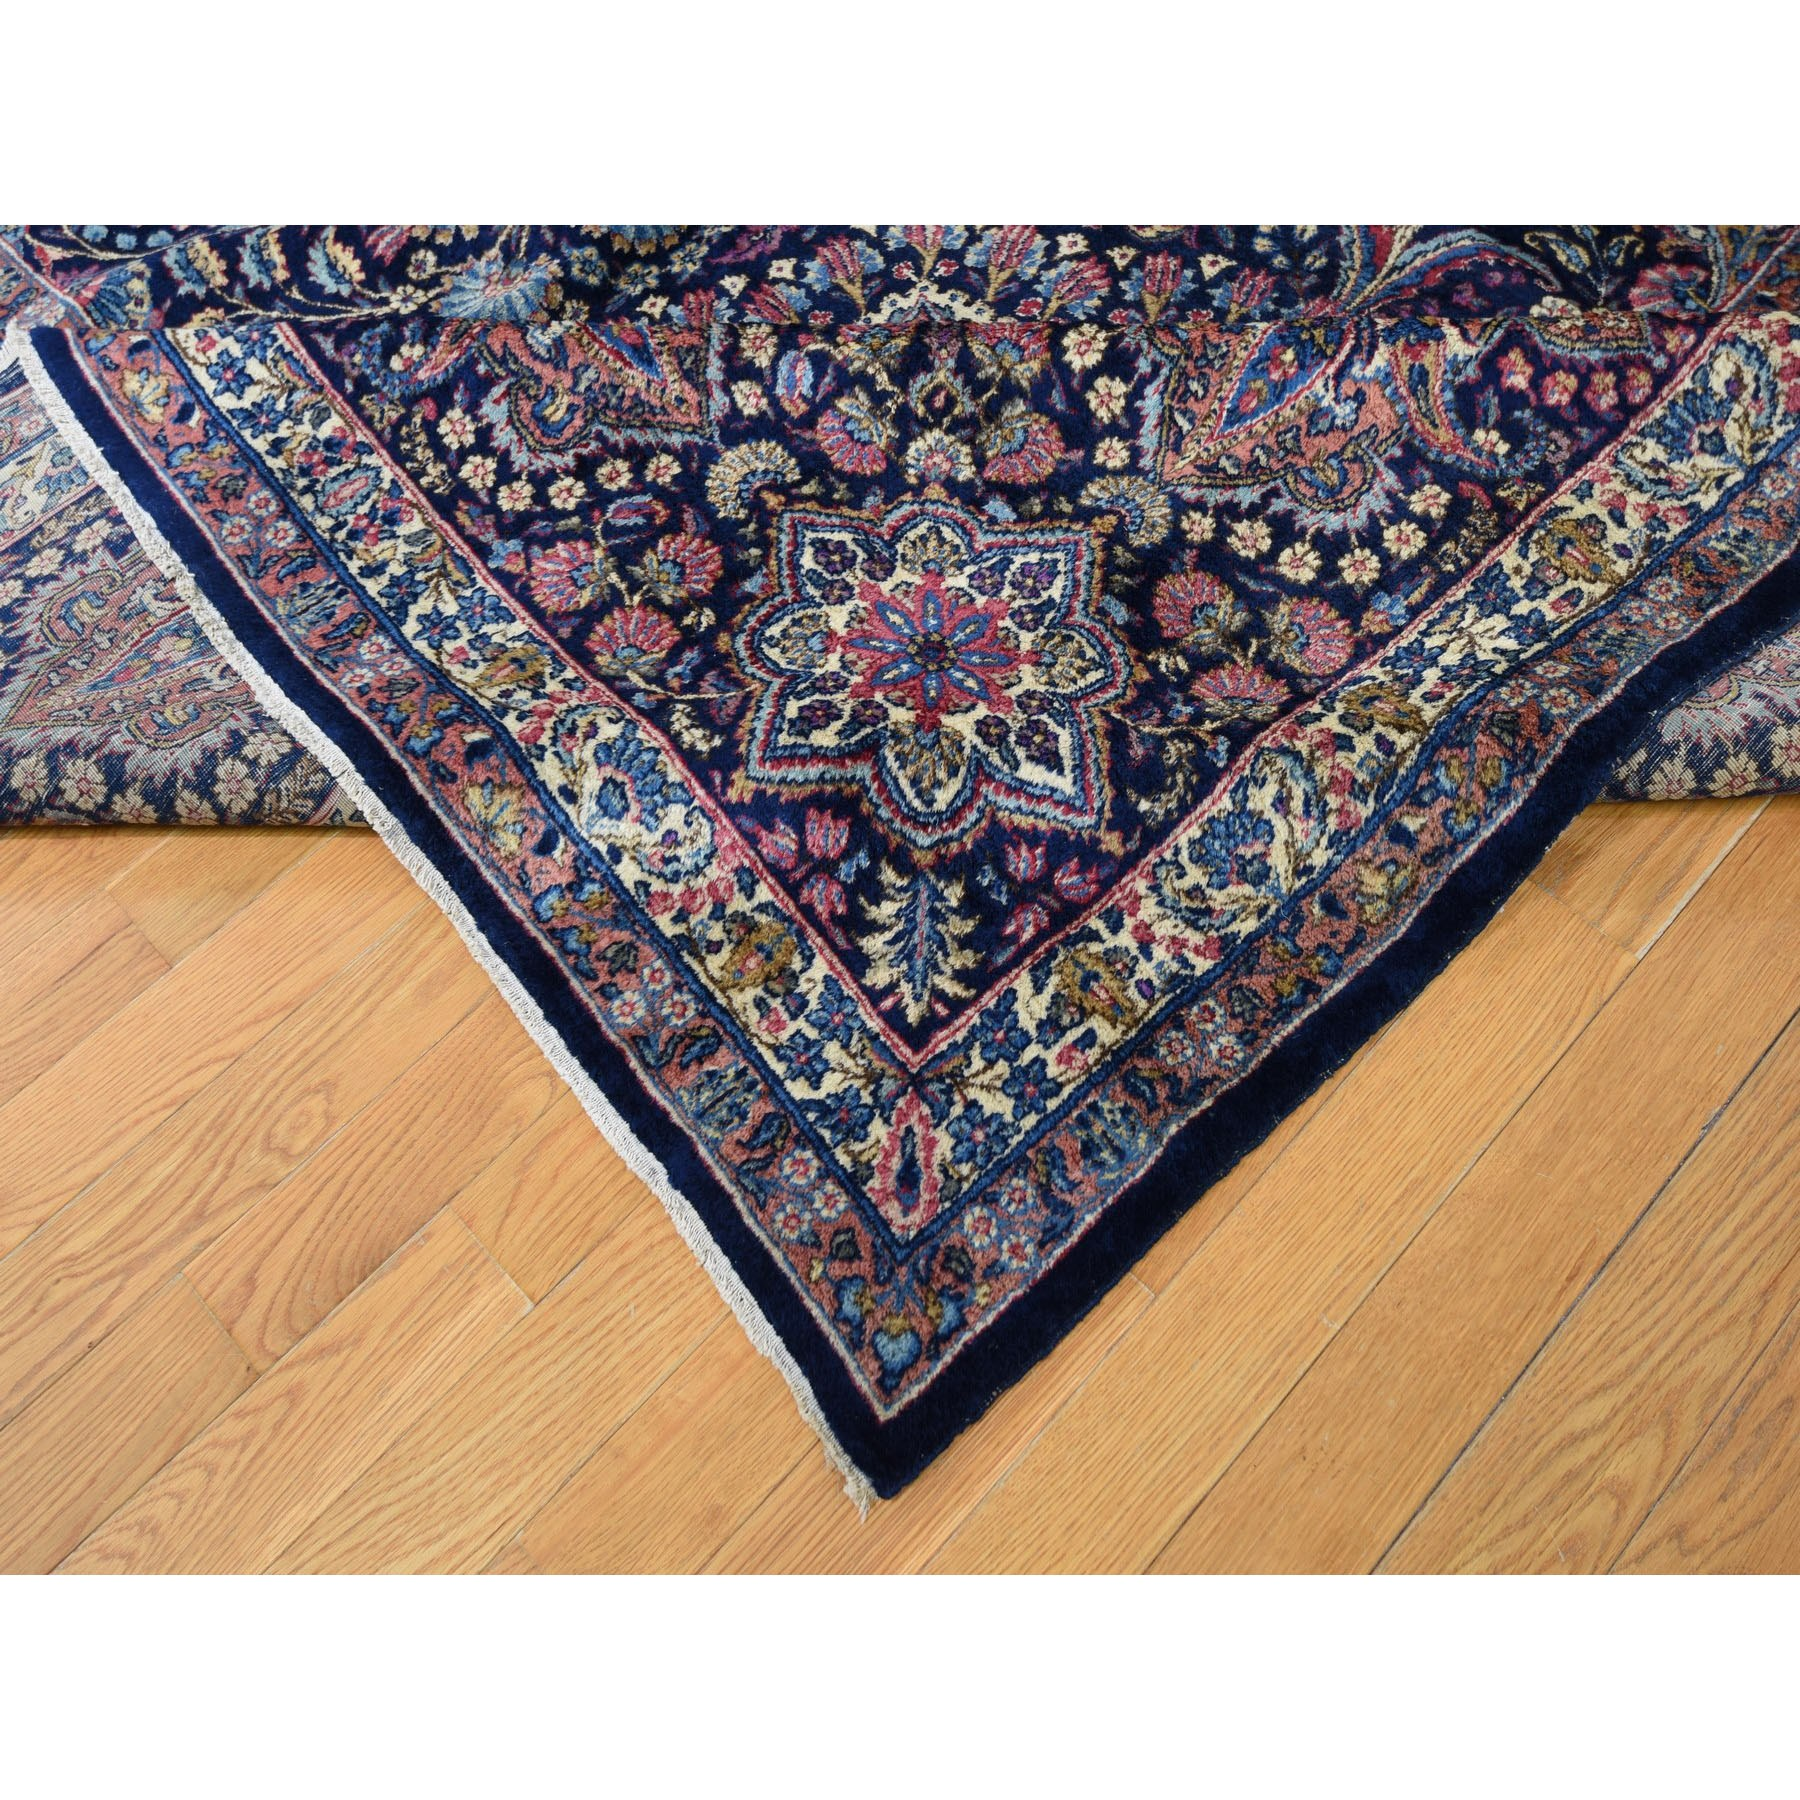 "13'4""x19'7"" Oversized Antique Persian Kerman Full Pile And Soft Hand Knotted Oriental Rug"